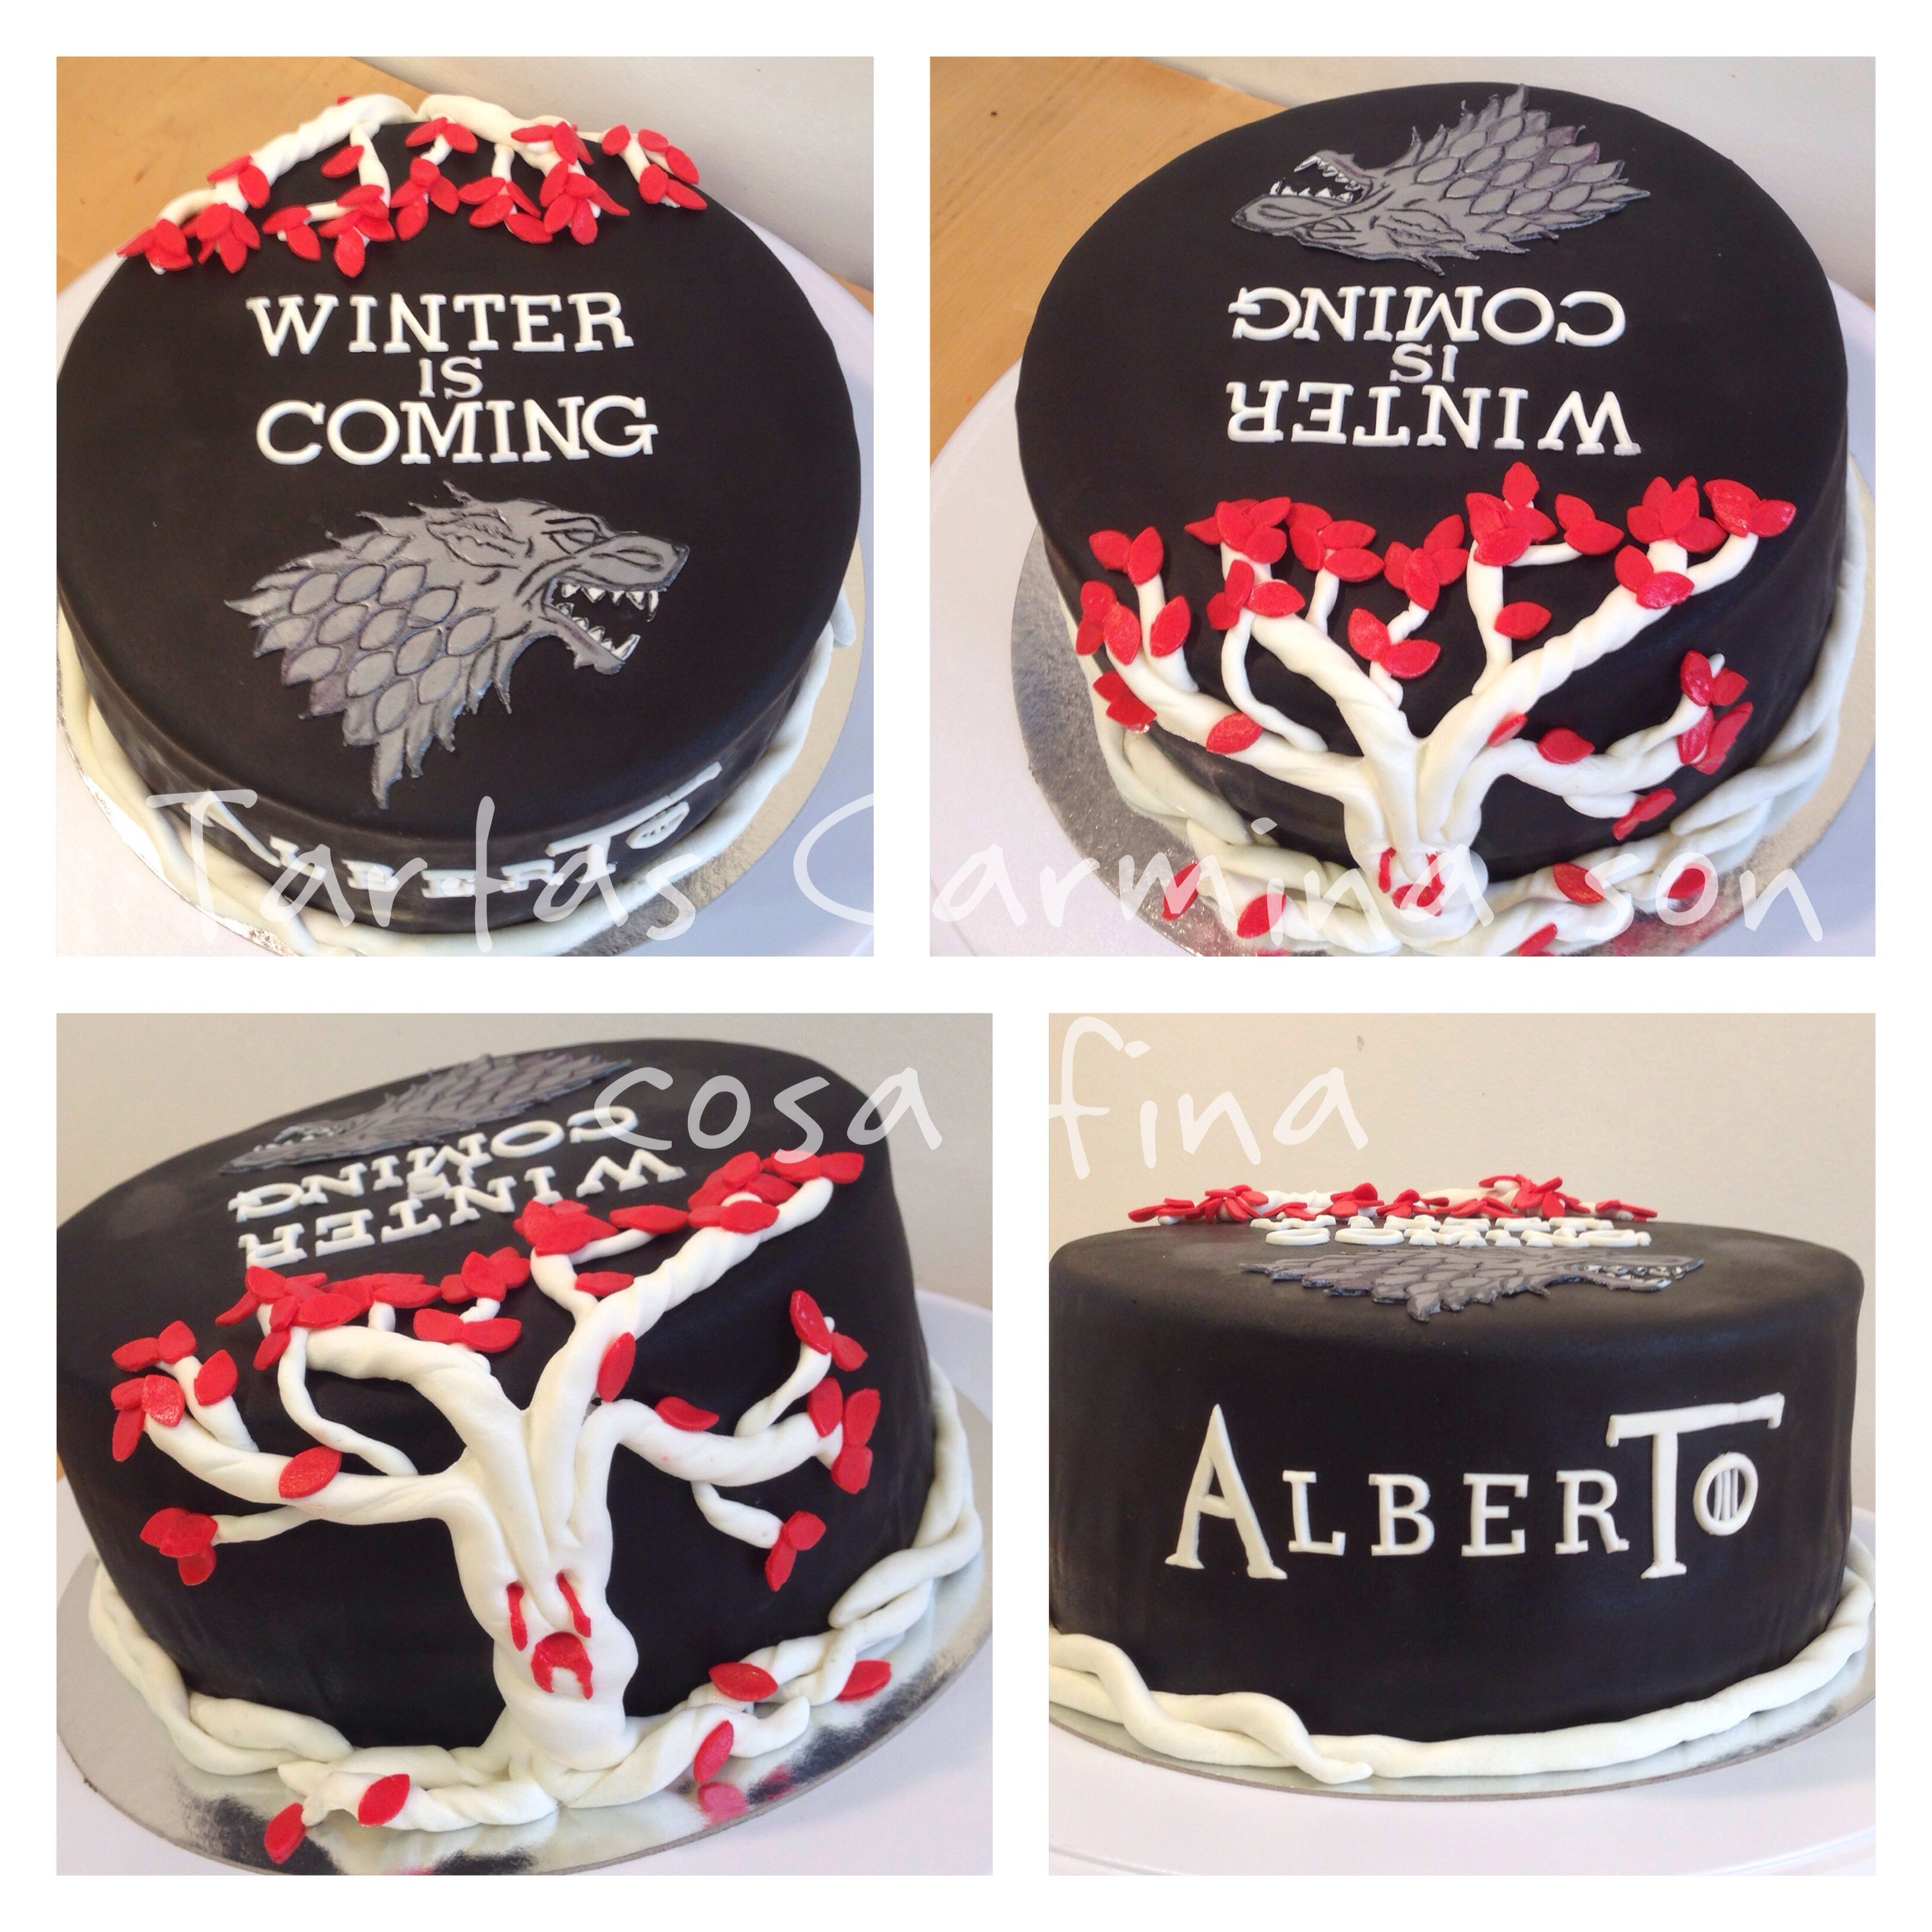 game of thrones cake cakes decor sweets. Black Bedroom Furniture Sets. Home Design Ideas